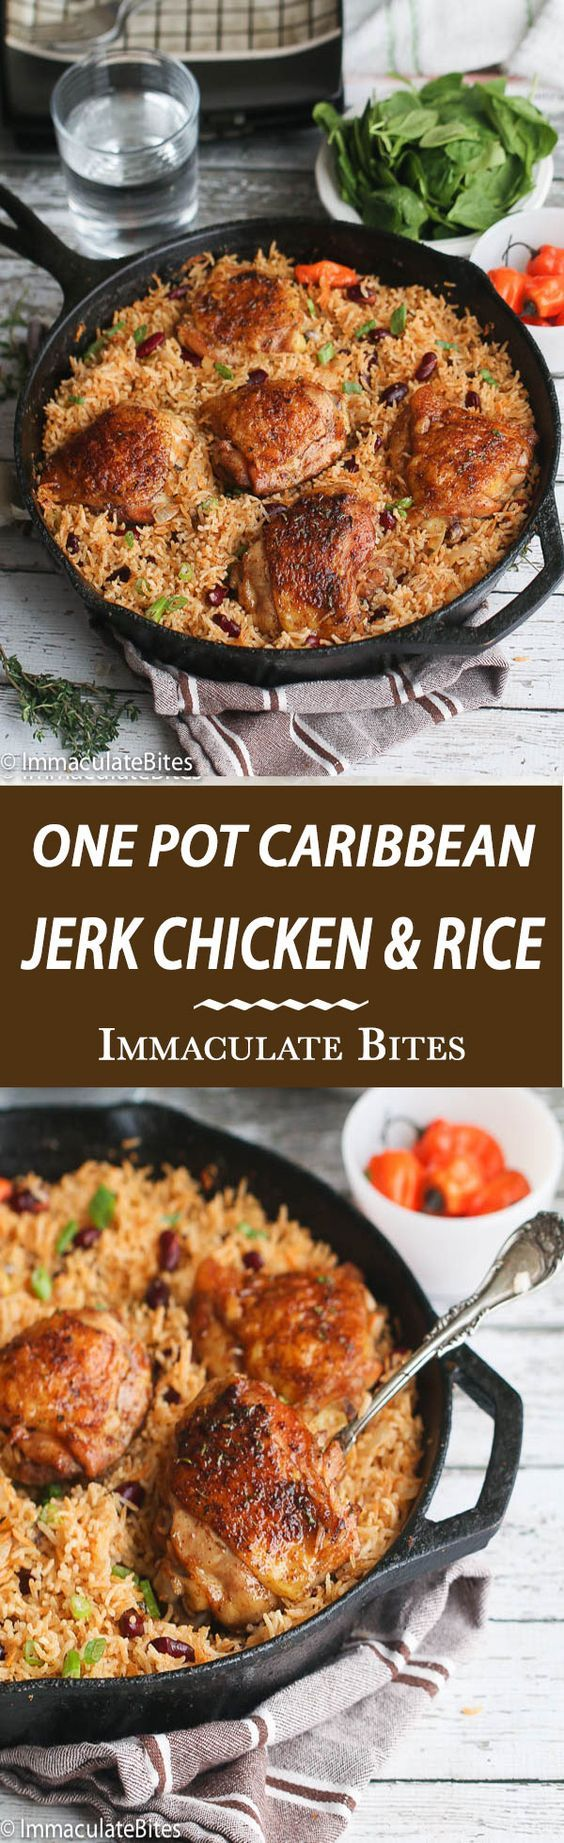 One Pot Caribbean Jerk Chicken & Rice – A flavor explosion in a pot! Jerk Chicken thighs baked to Crispy perfection on a bed of fragrant rice and beans.: